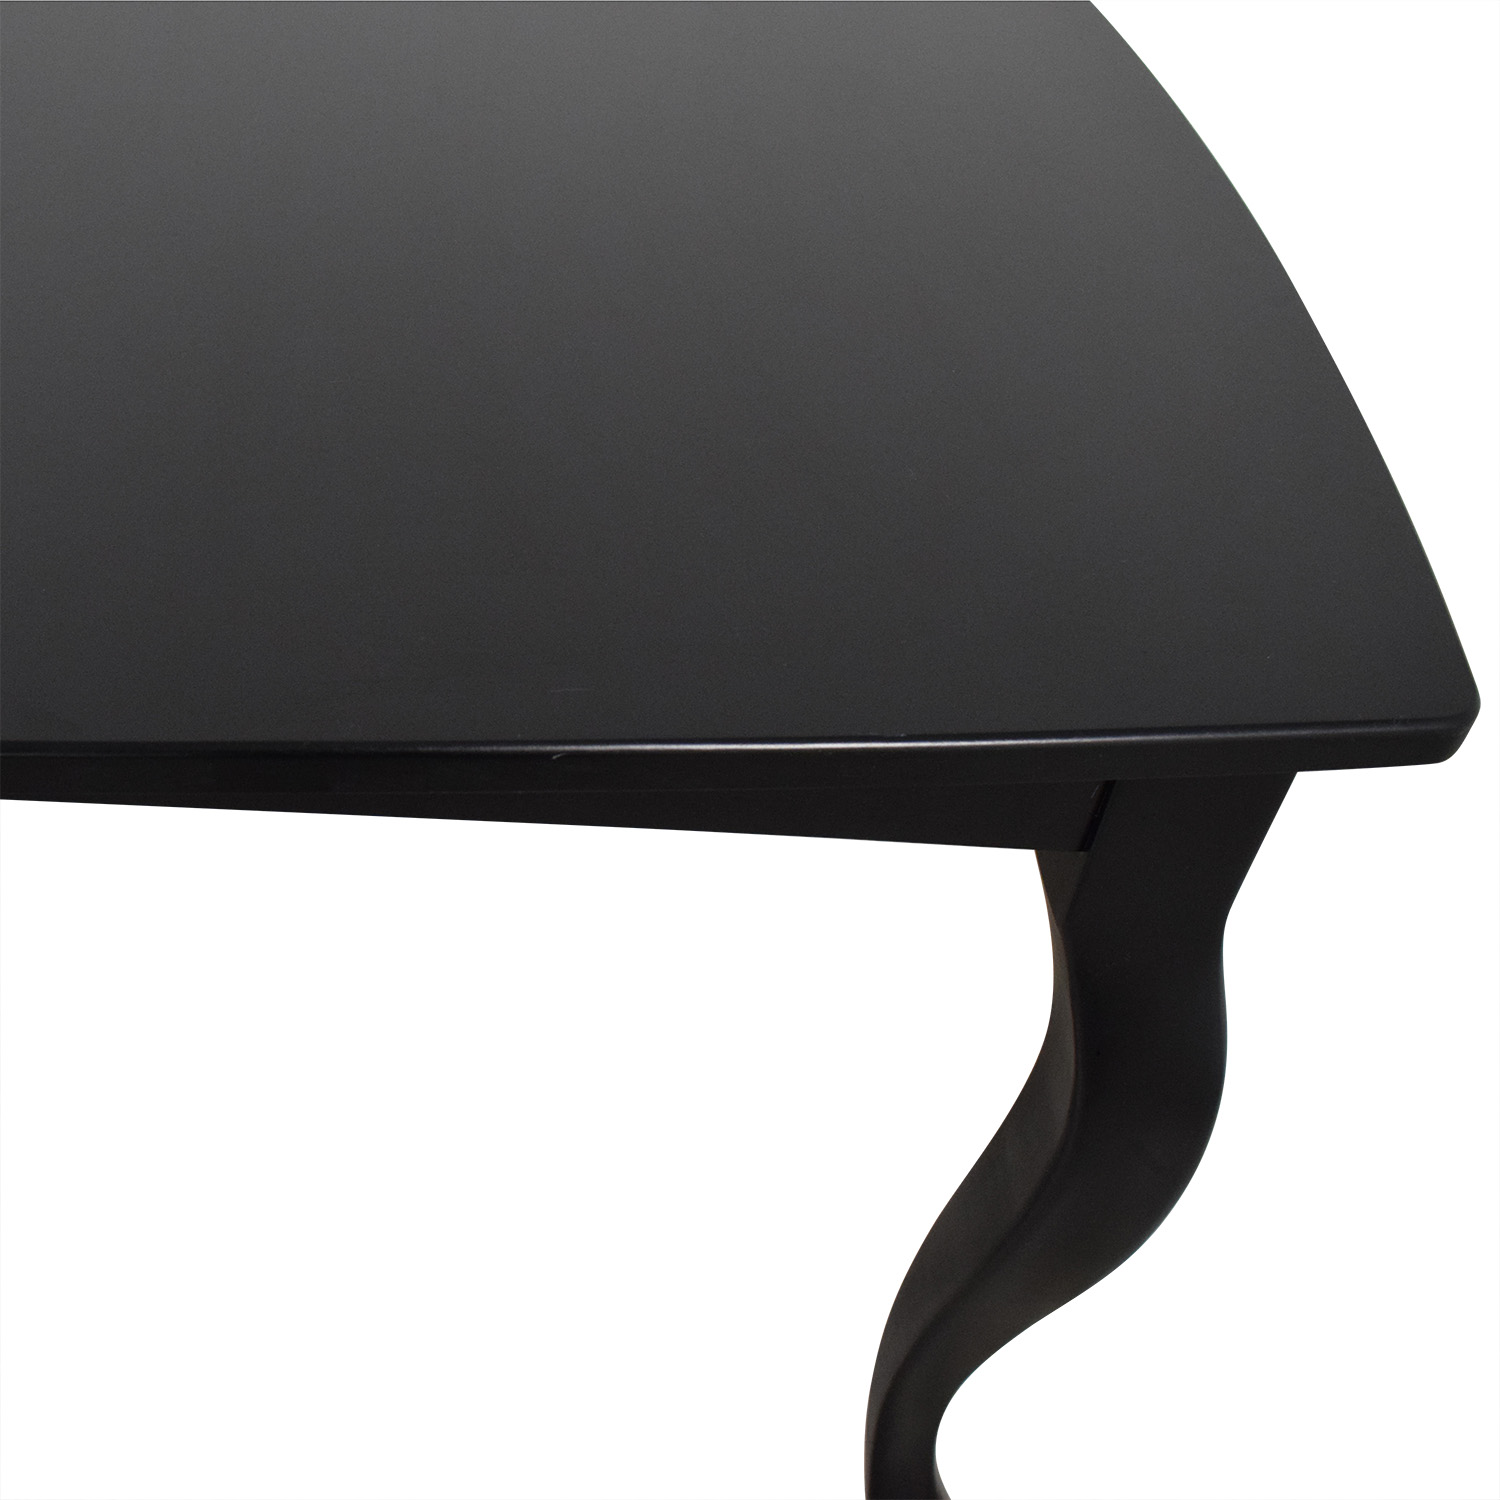 Macy's Dining Table / Tables